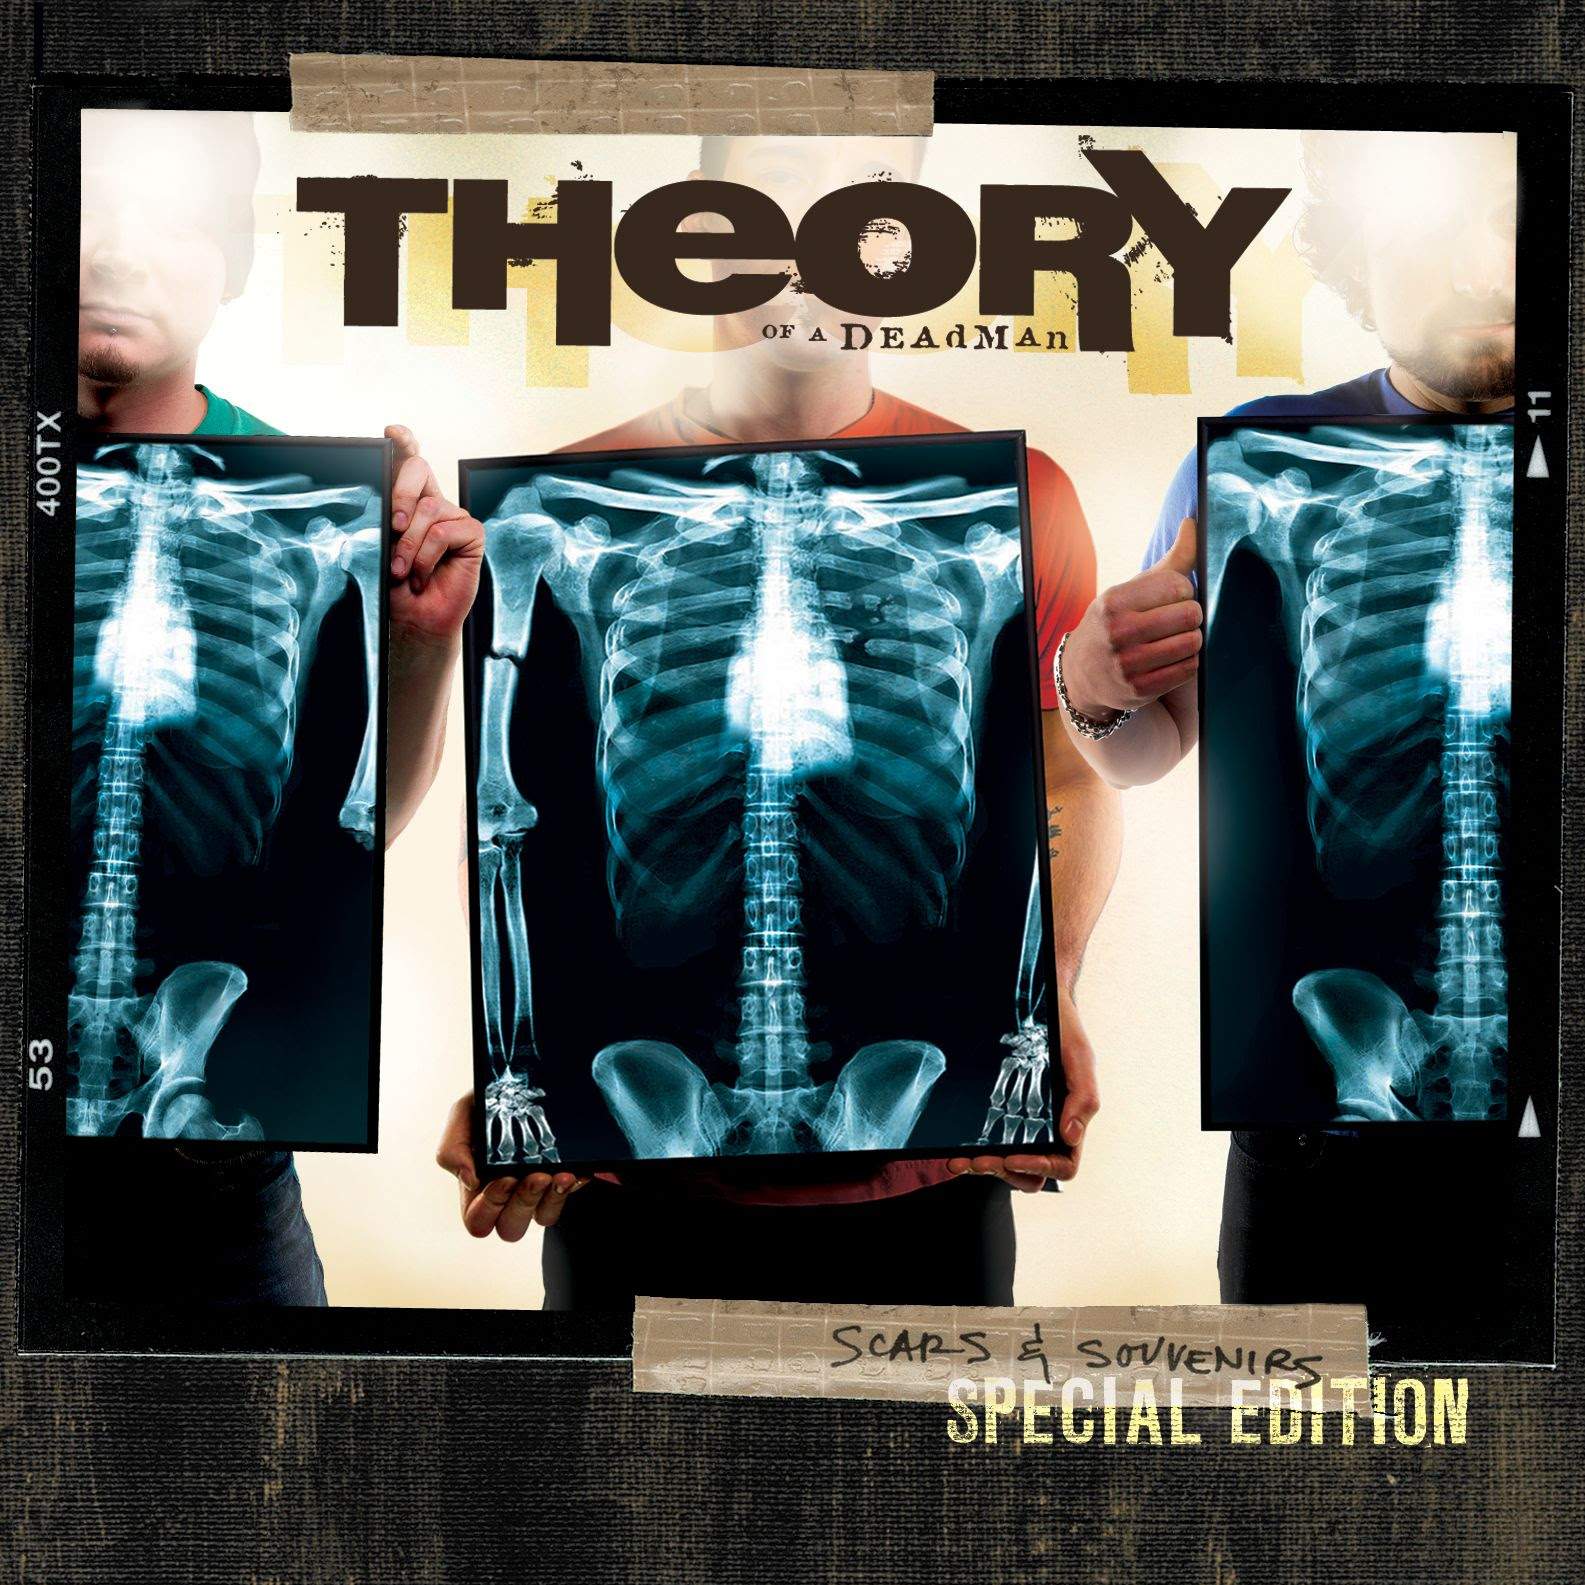 Listen Free To Theory Of A Deadman Hate My Life Radio Iheartradio